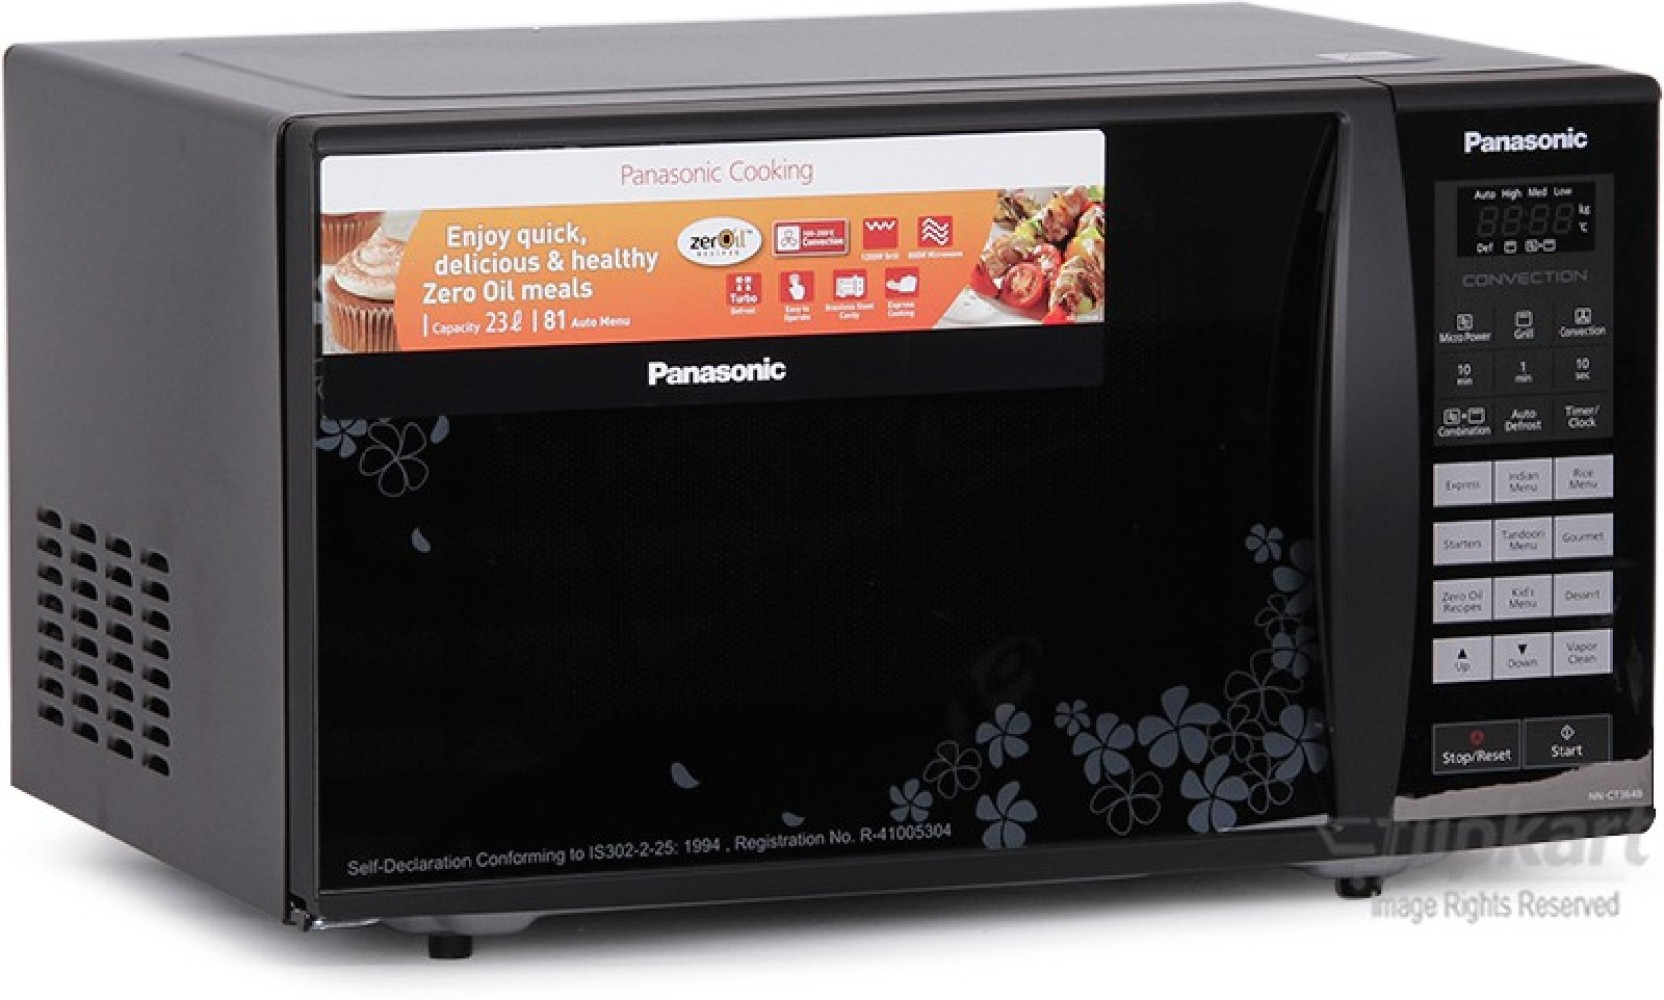 Www Panasonic Com Register Microwave Bestmicrowave